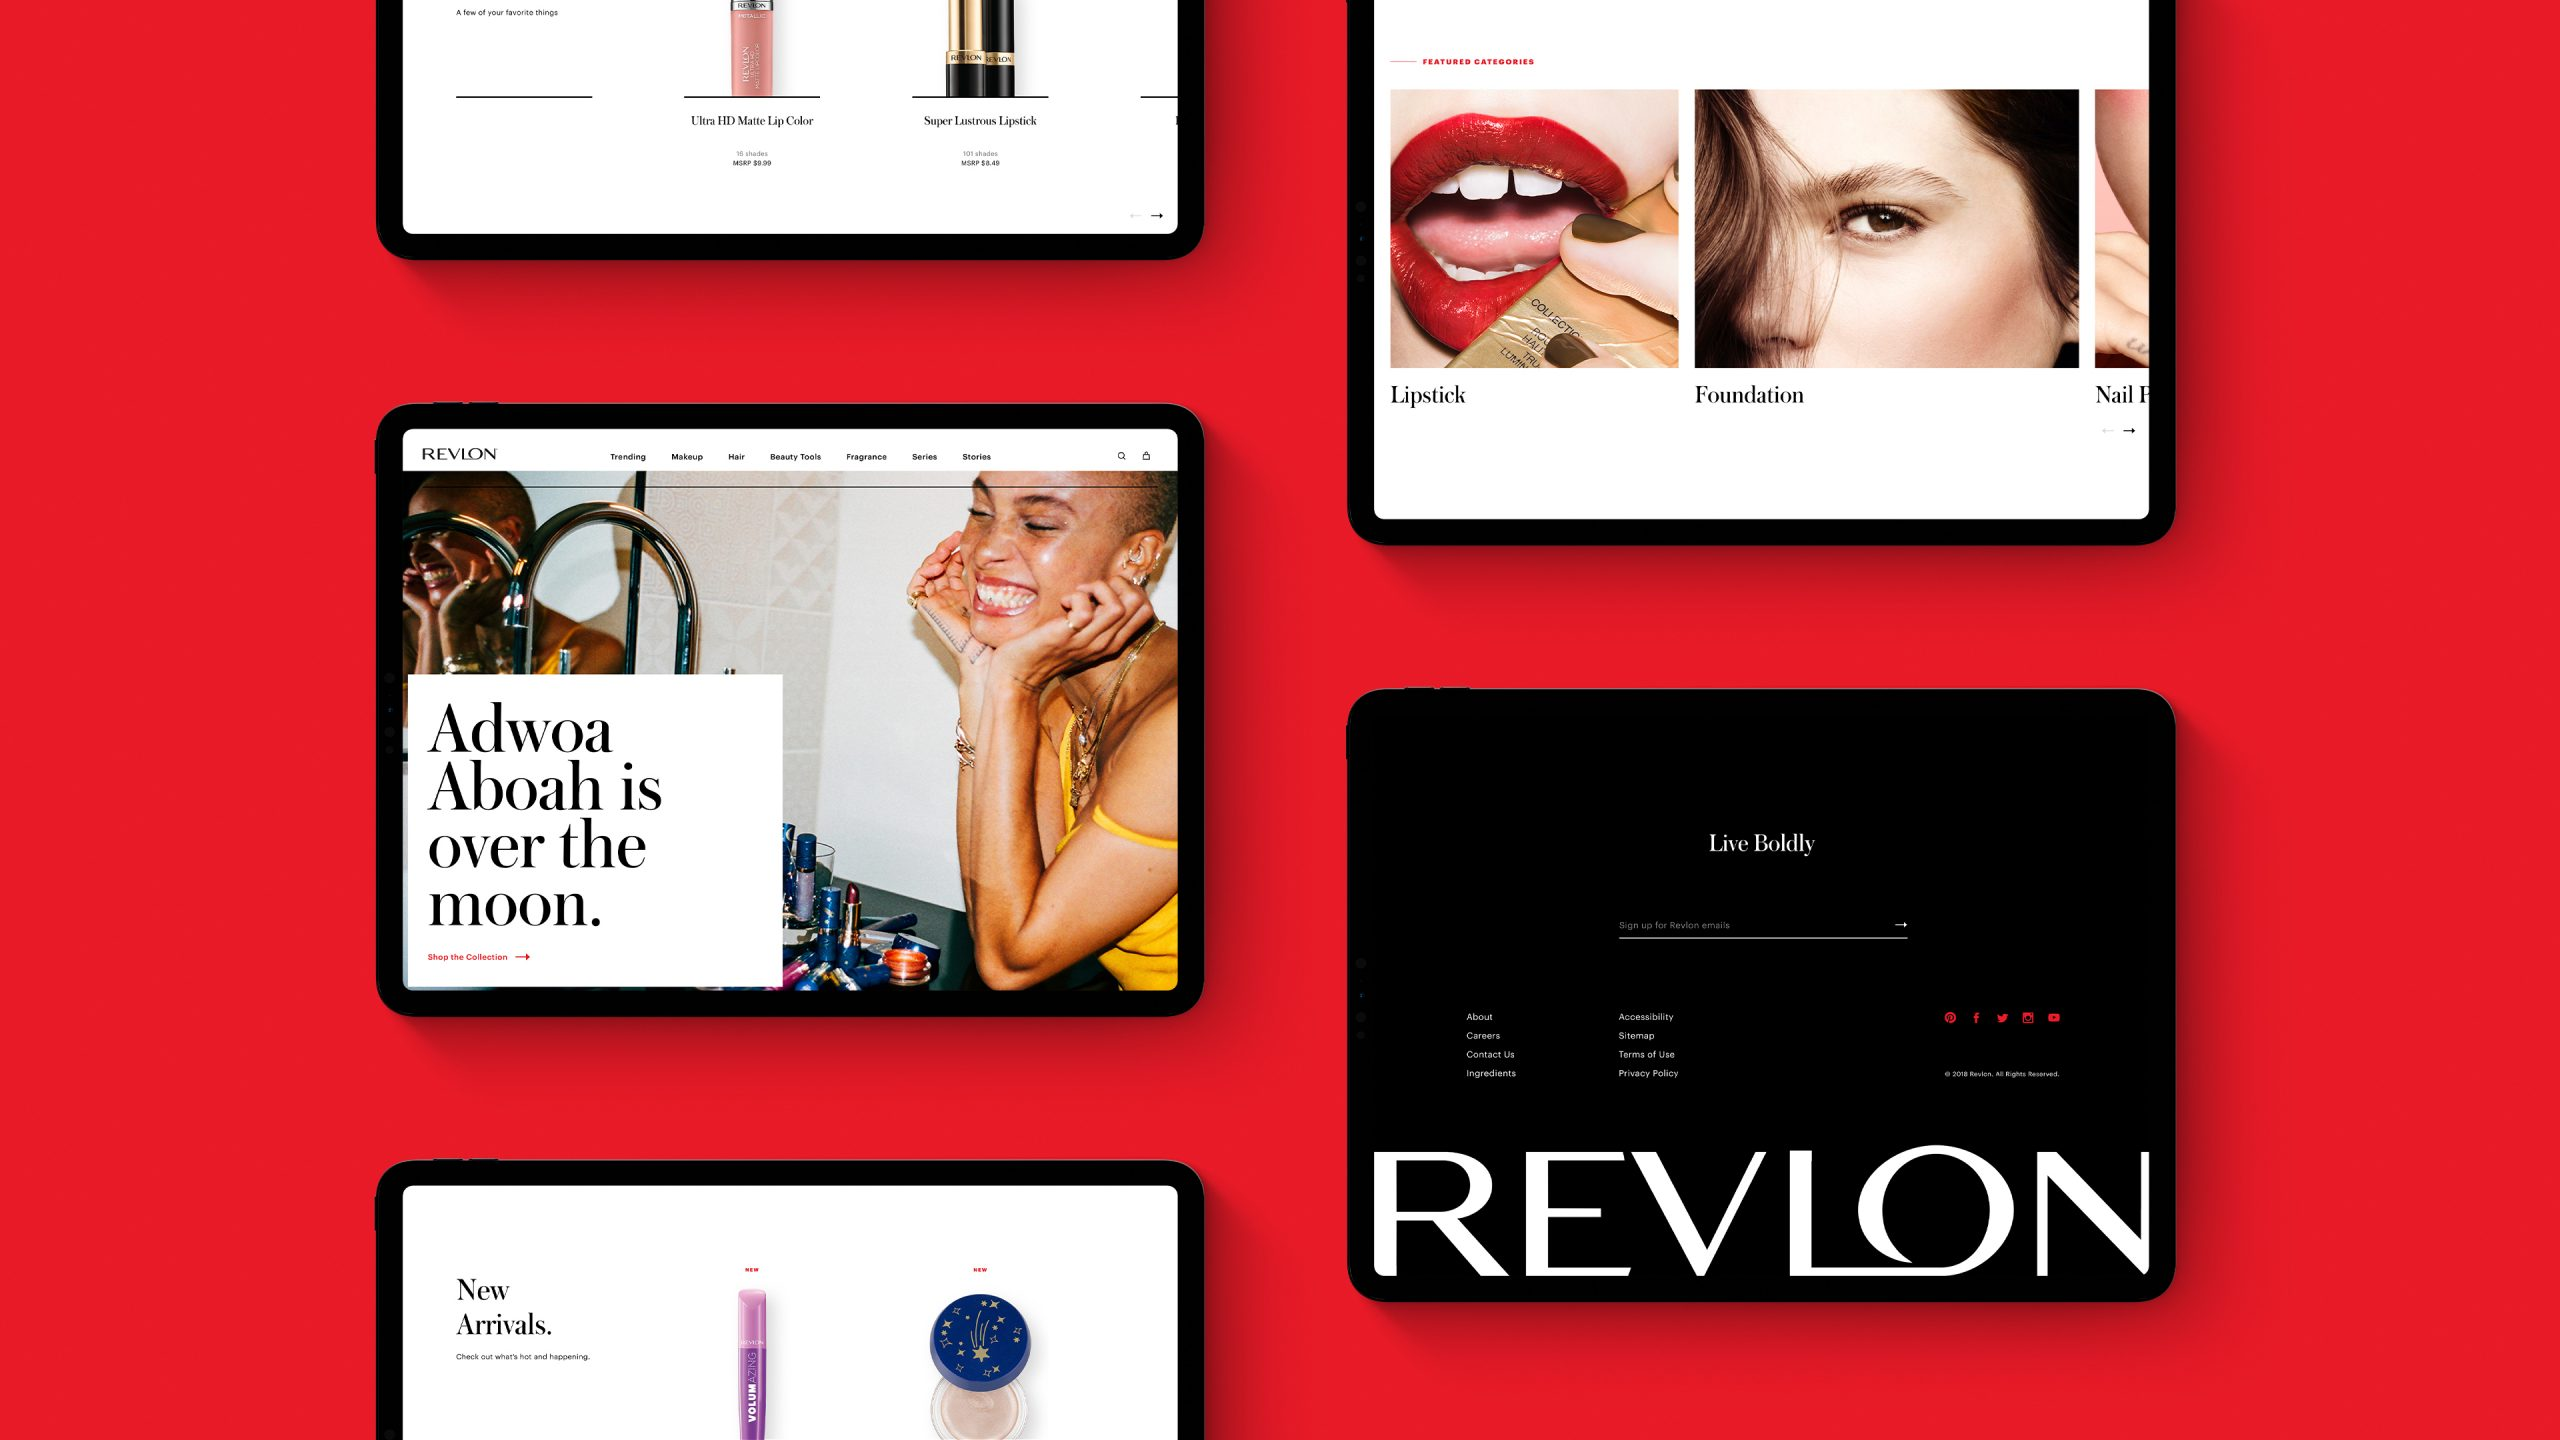 revlon_work_home-tab